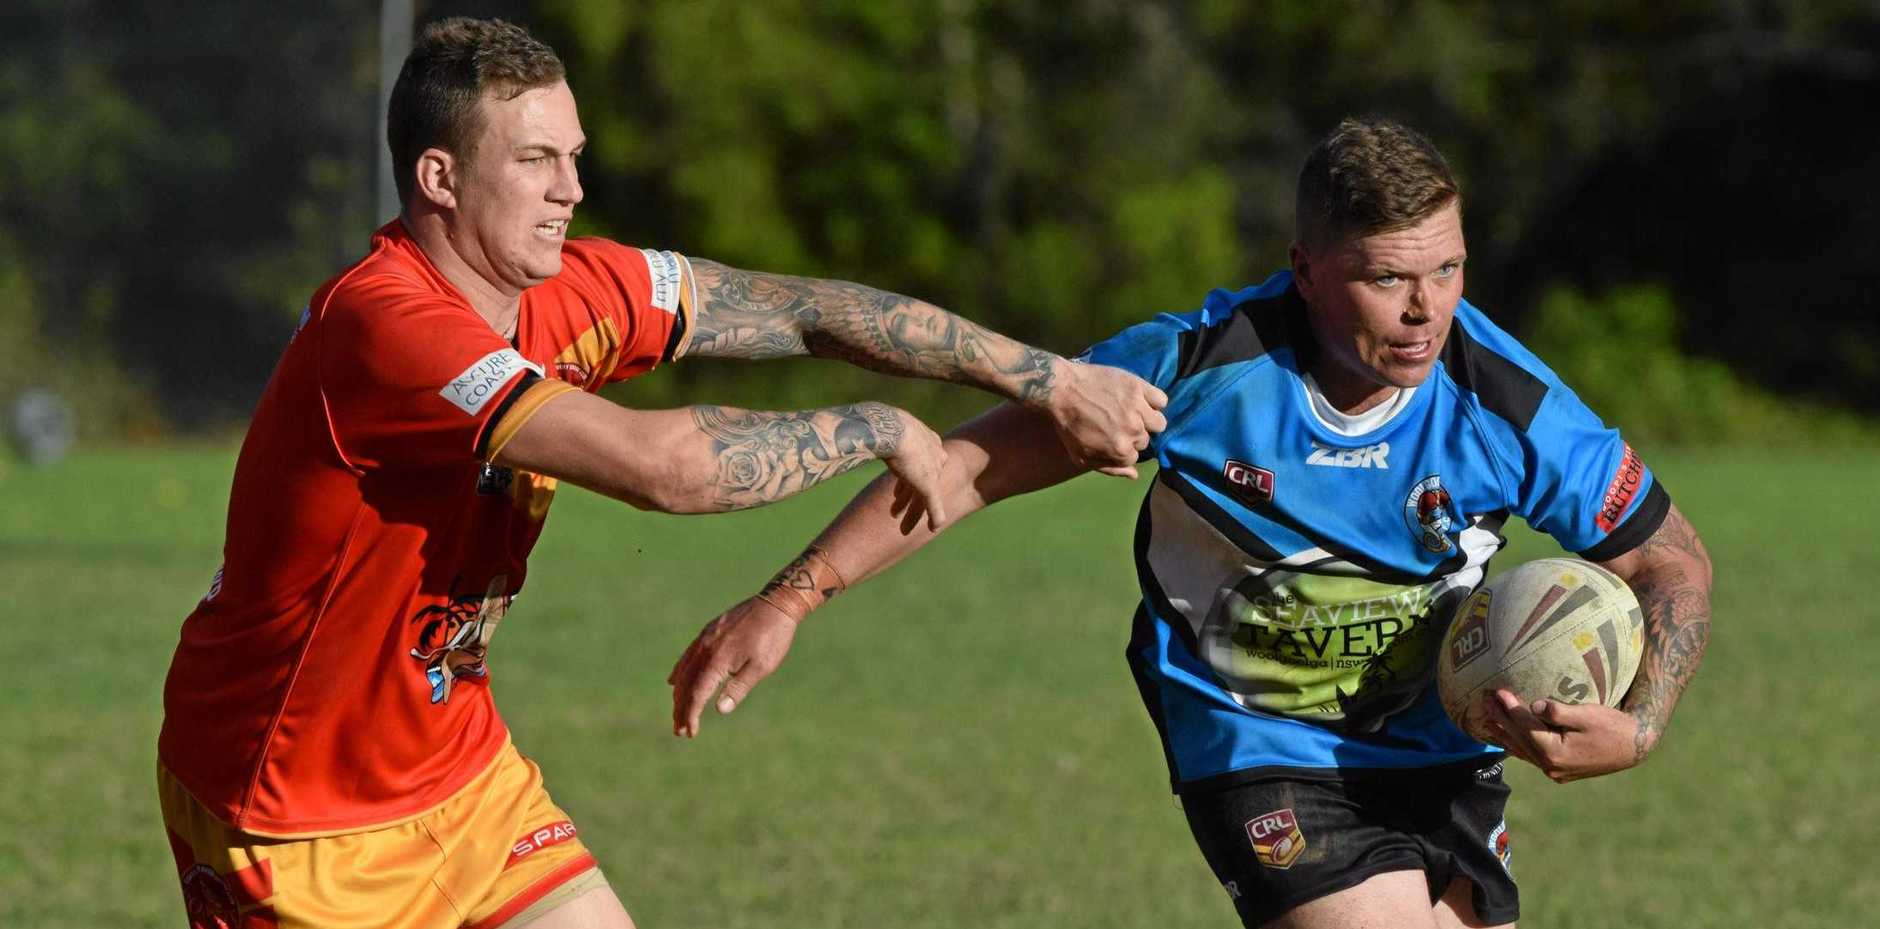 FIERCE RIVALS: Woolgoolga Seahorses hooker Michael Grant tries to get around Coffs Harbour Comets captain Brad Collinson when the two sides clashed in round six.